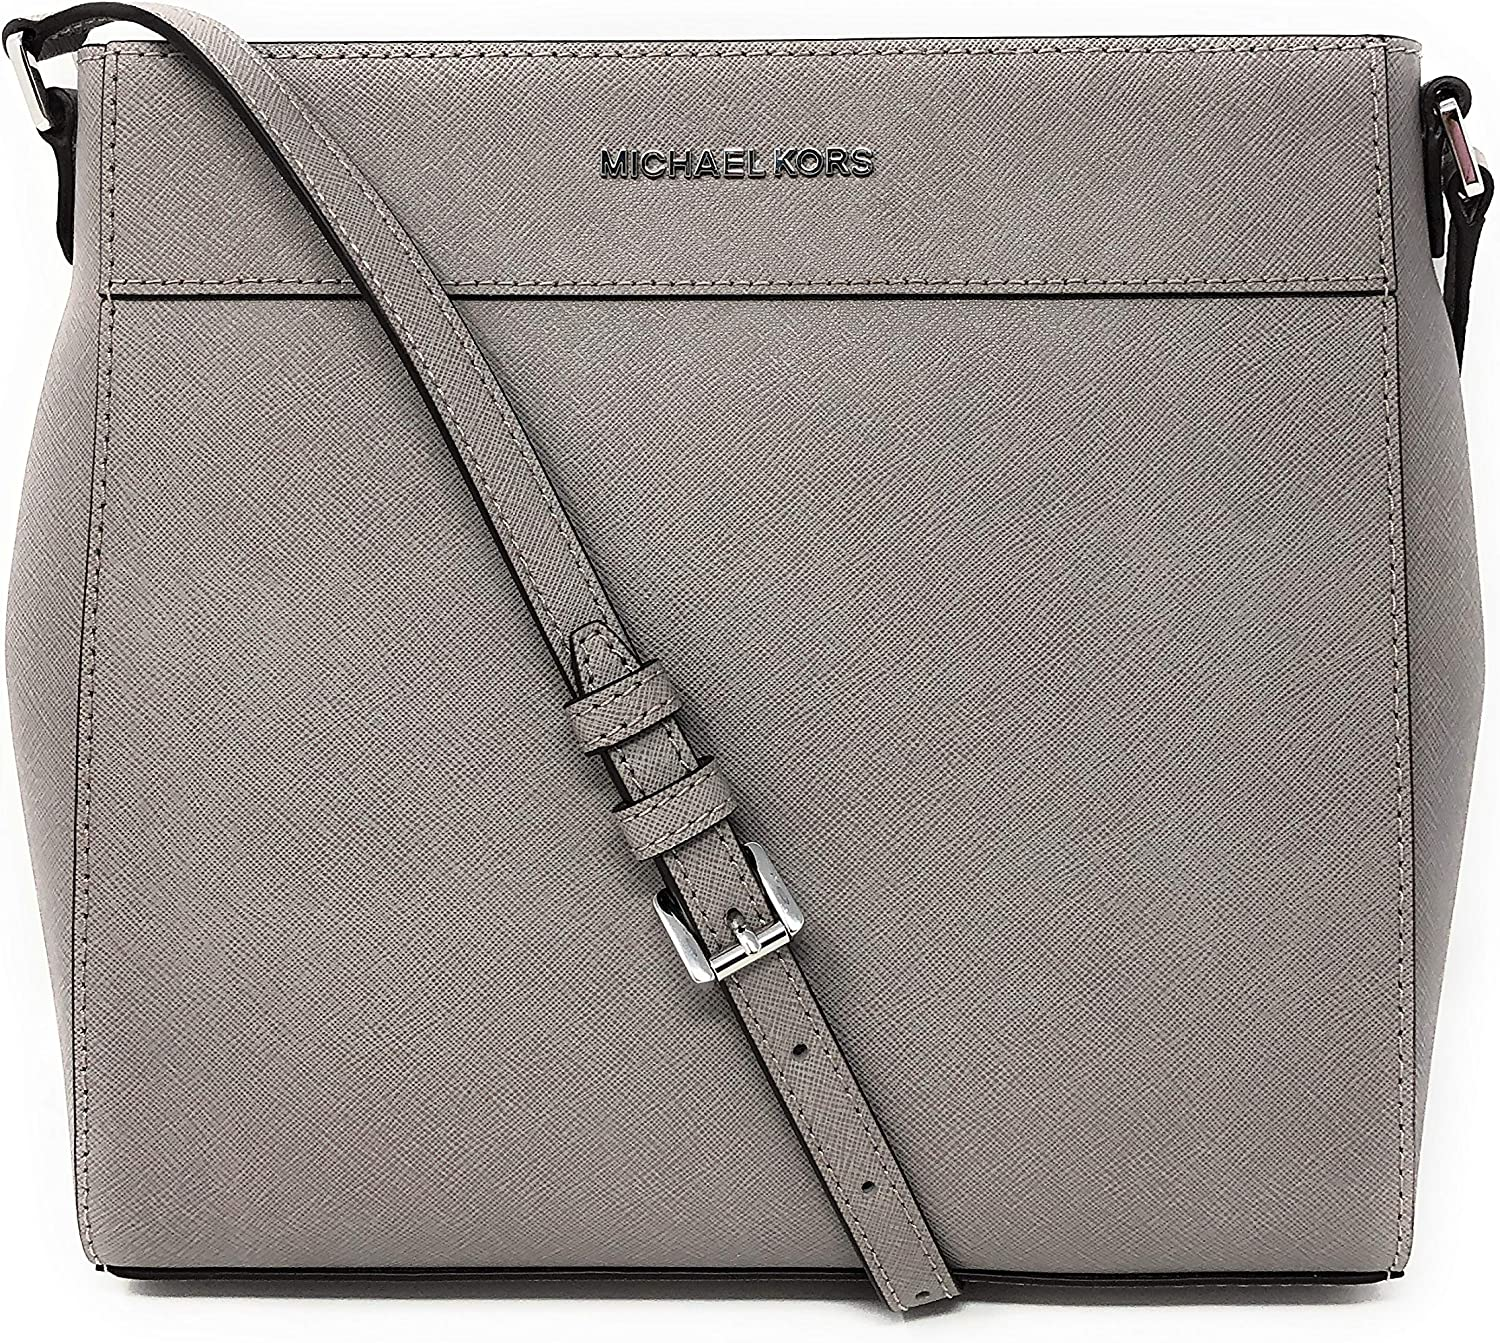 Michael Kors Women s Jet Set Travel Messenger Crossbody Bag